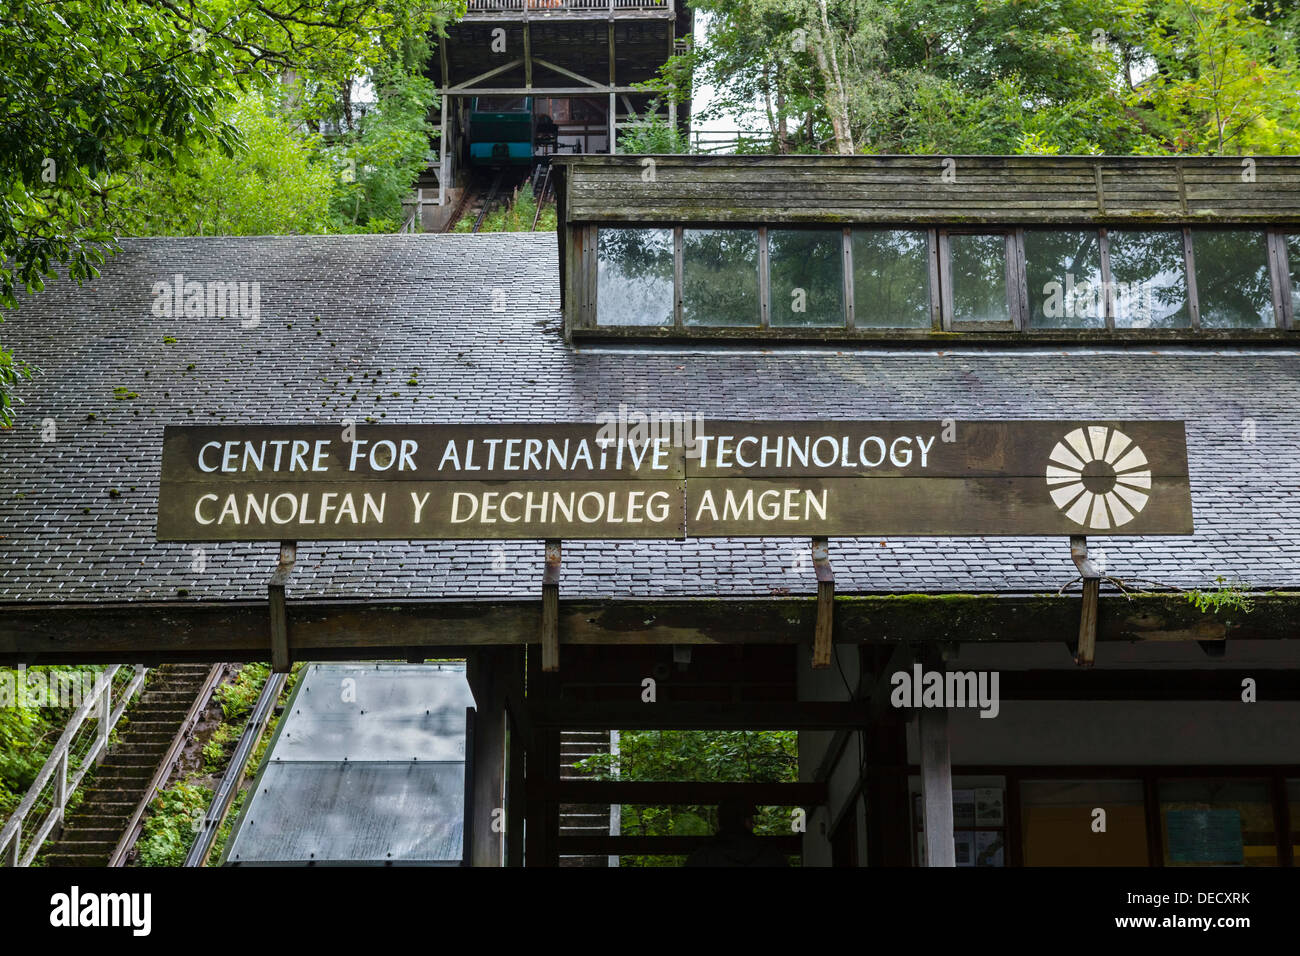 Centre for Alternative Technology avec de l'eau entrée funiculaire équilibré à gauche, près de Machynlleth, Powys, Wales, UK Photo Stock